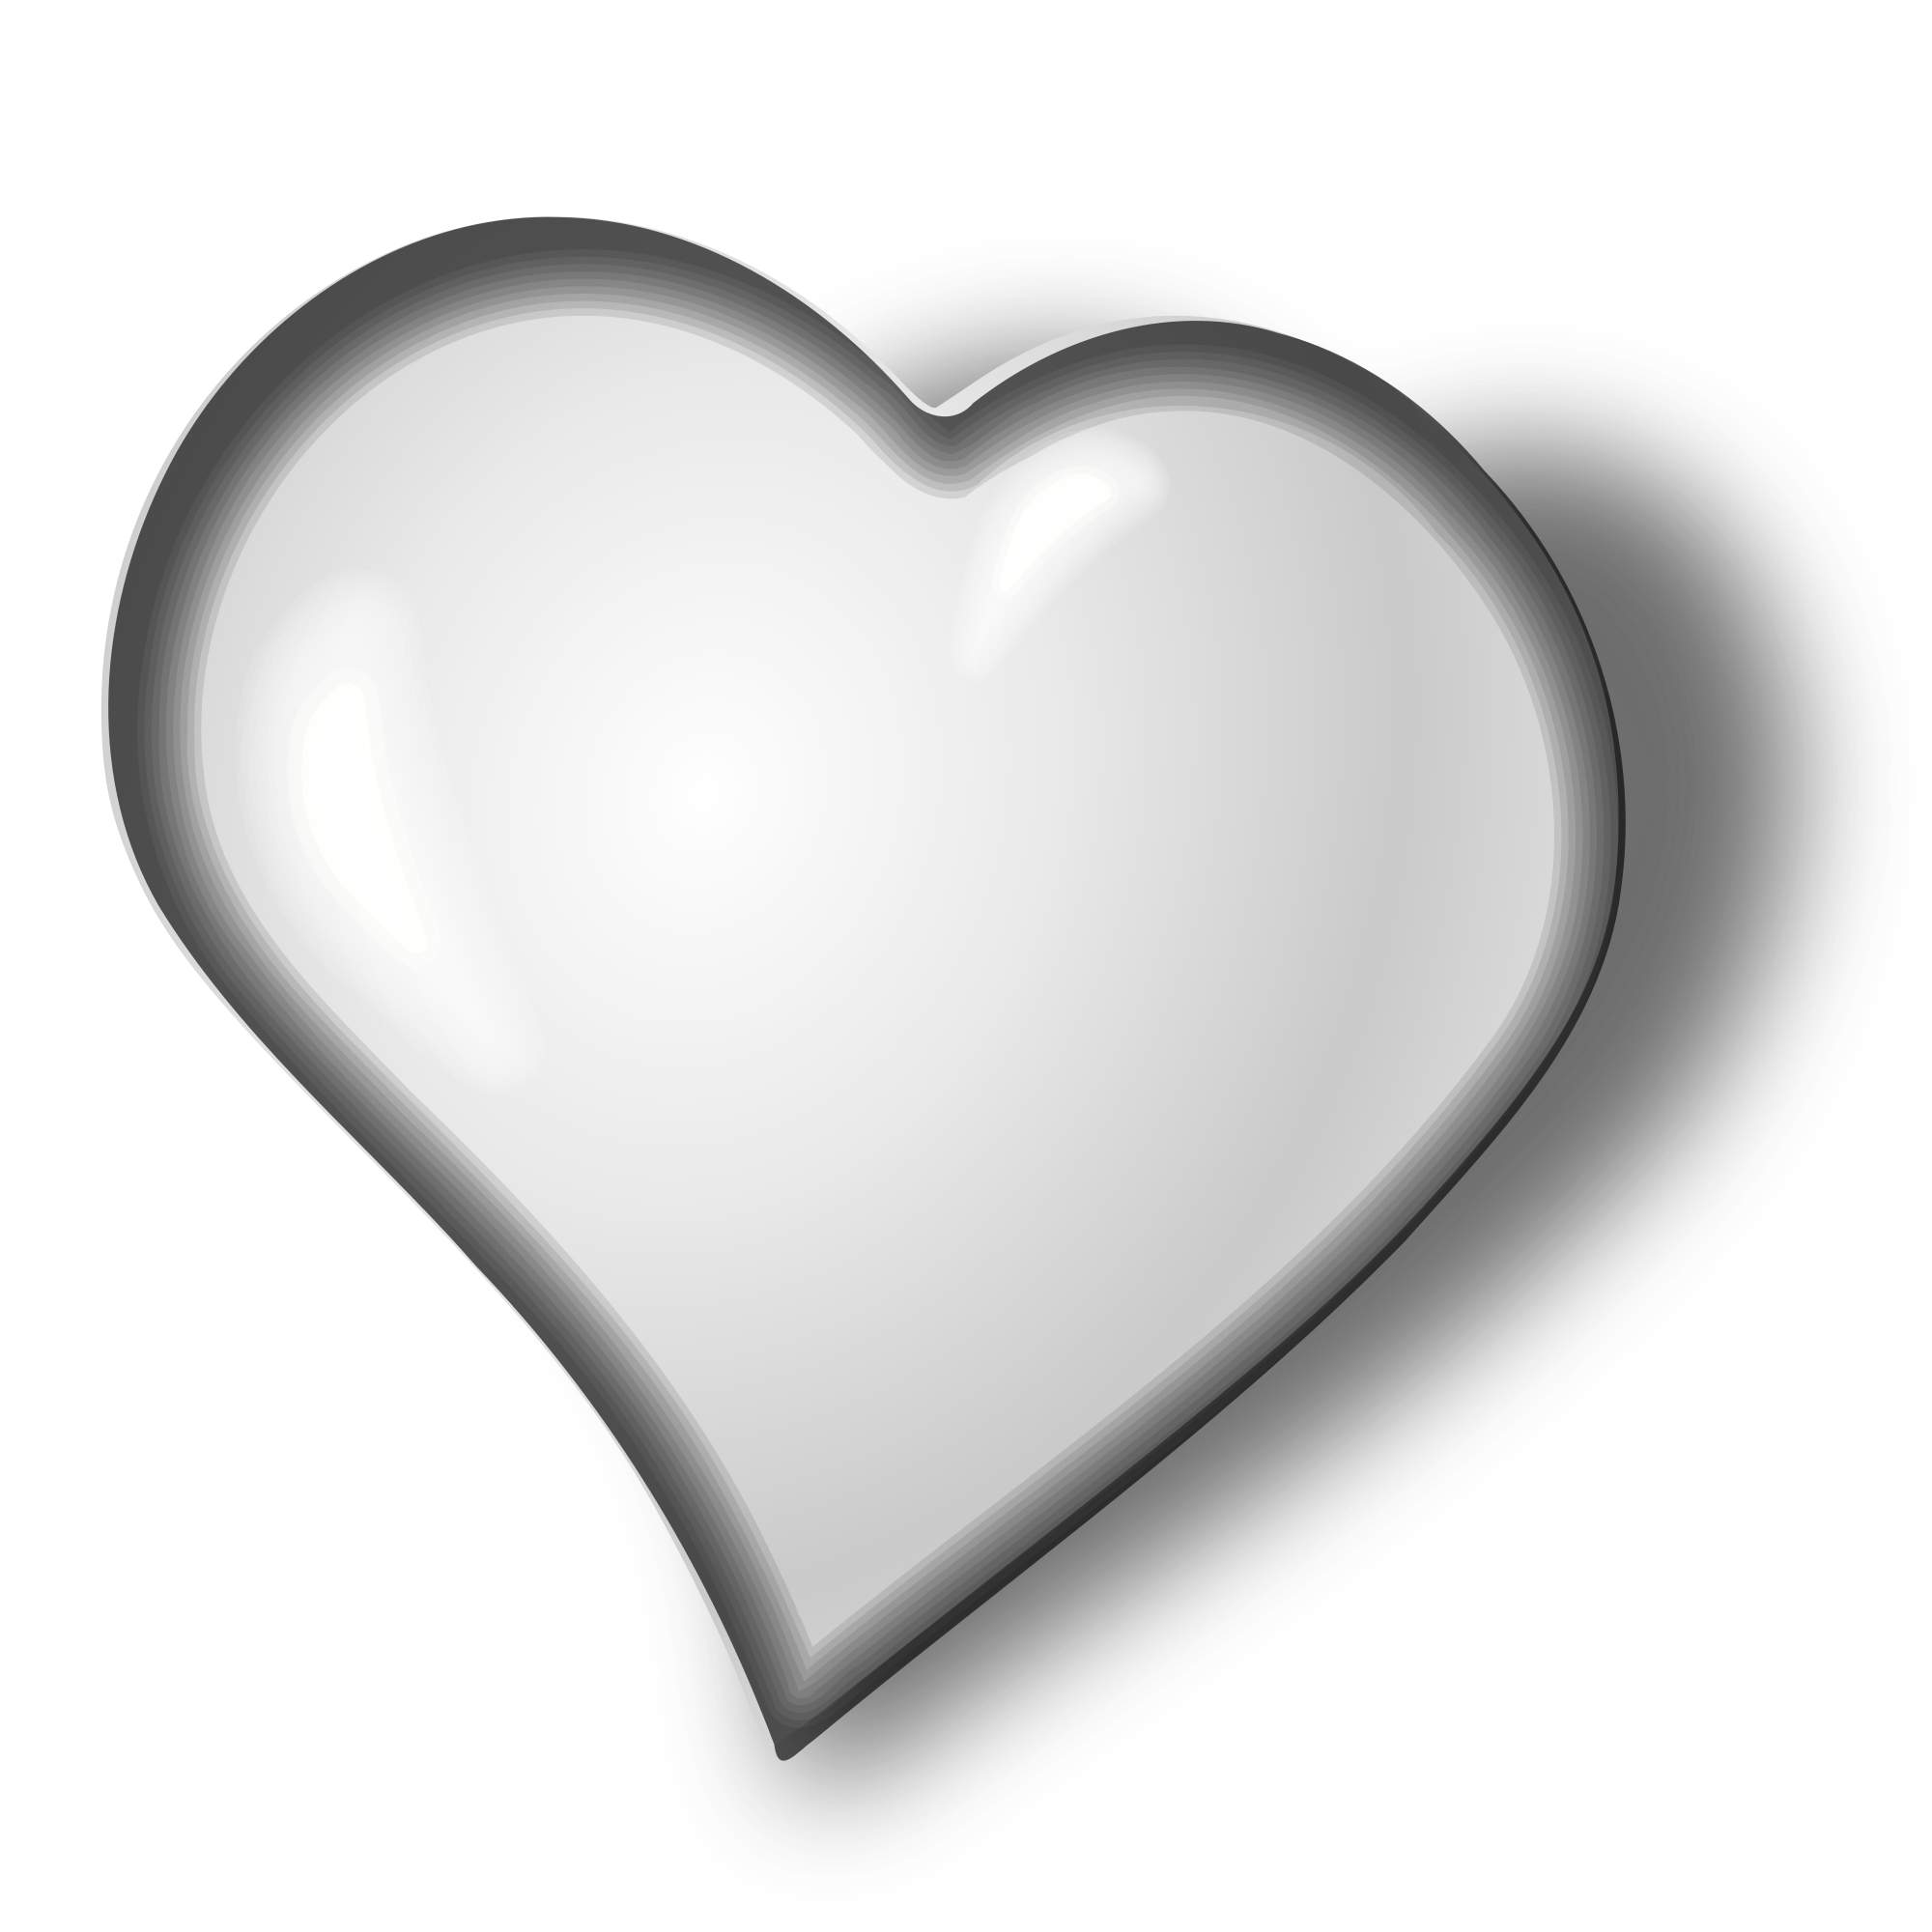 Black & white heart clipart graphic free stock File:White heart.svg - Wikimedia Commons graphic free stock